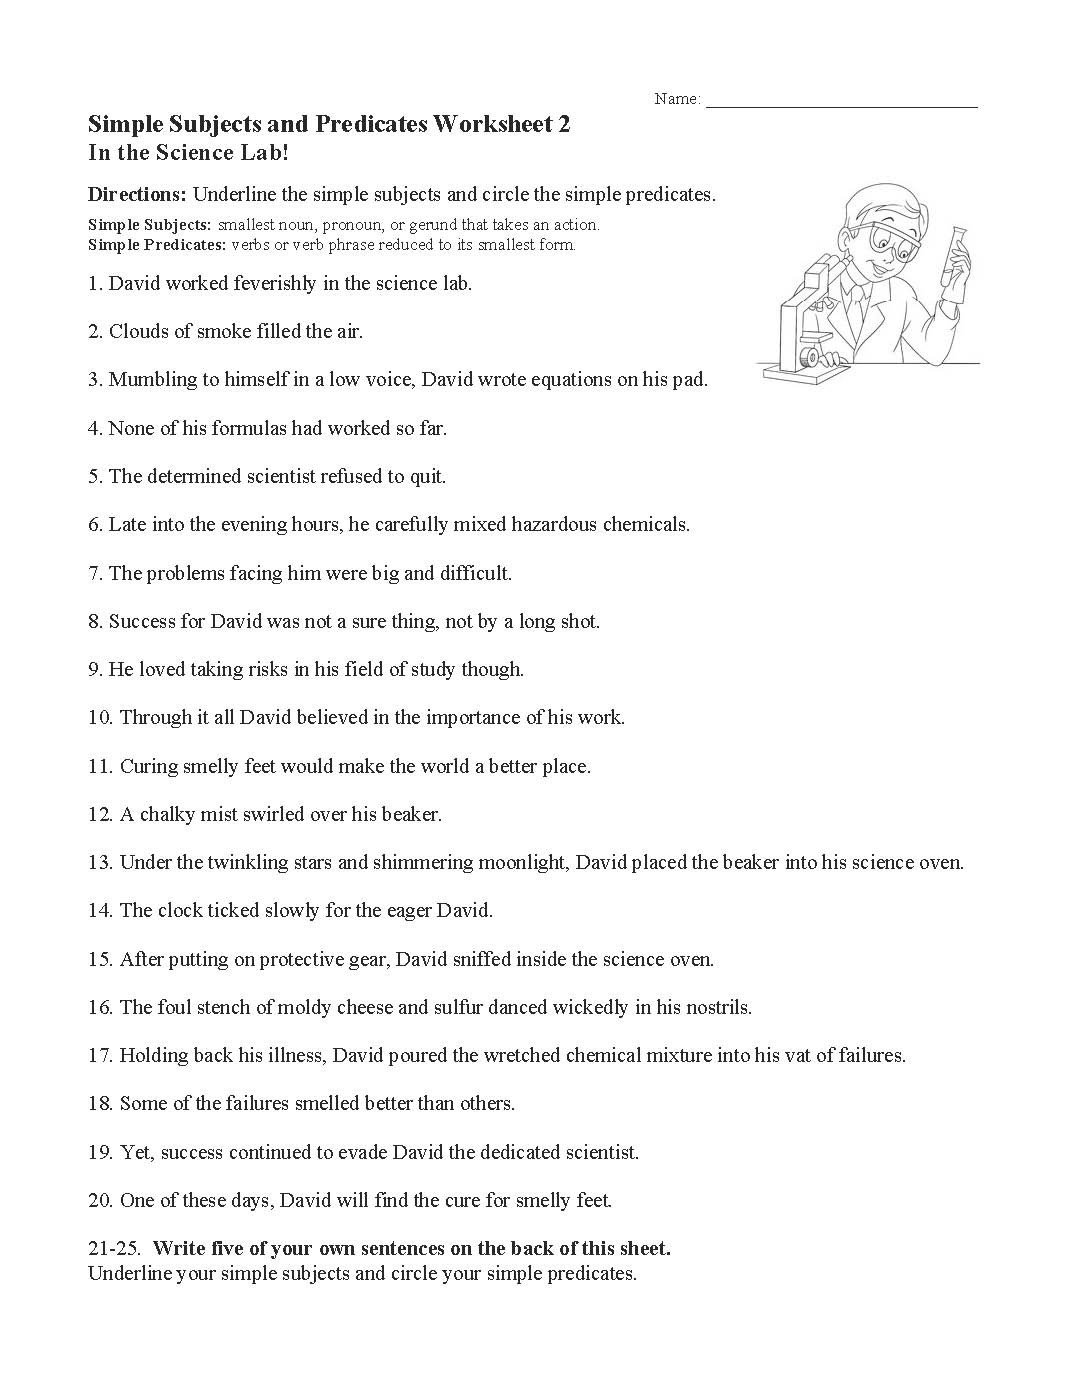 Free Subject and Predicate Worksheets Simple Subjects and Predicates Worksheet 2